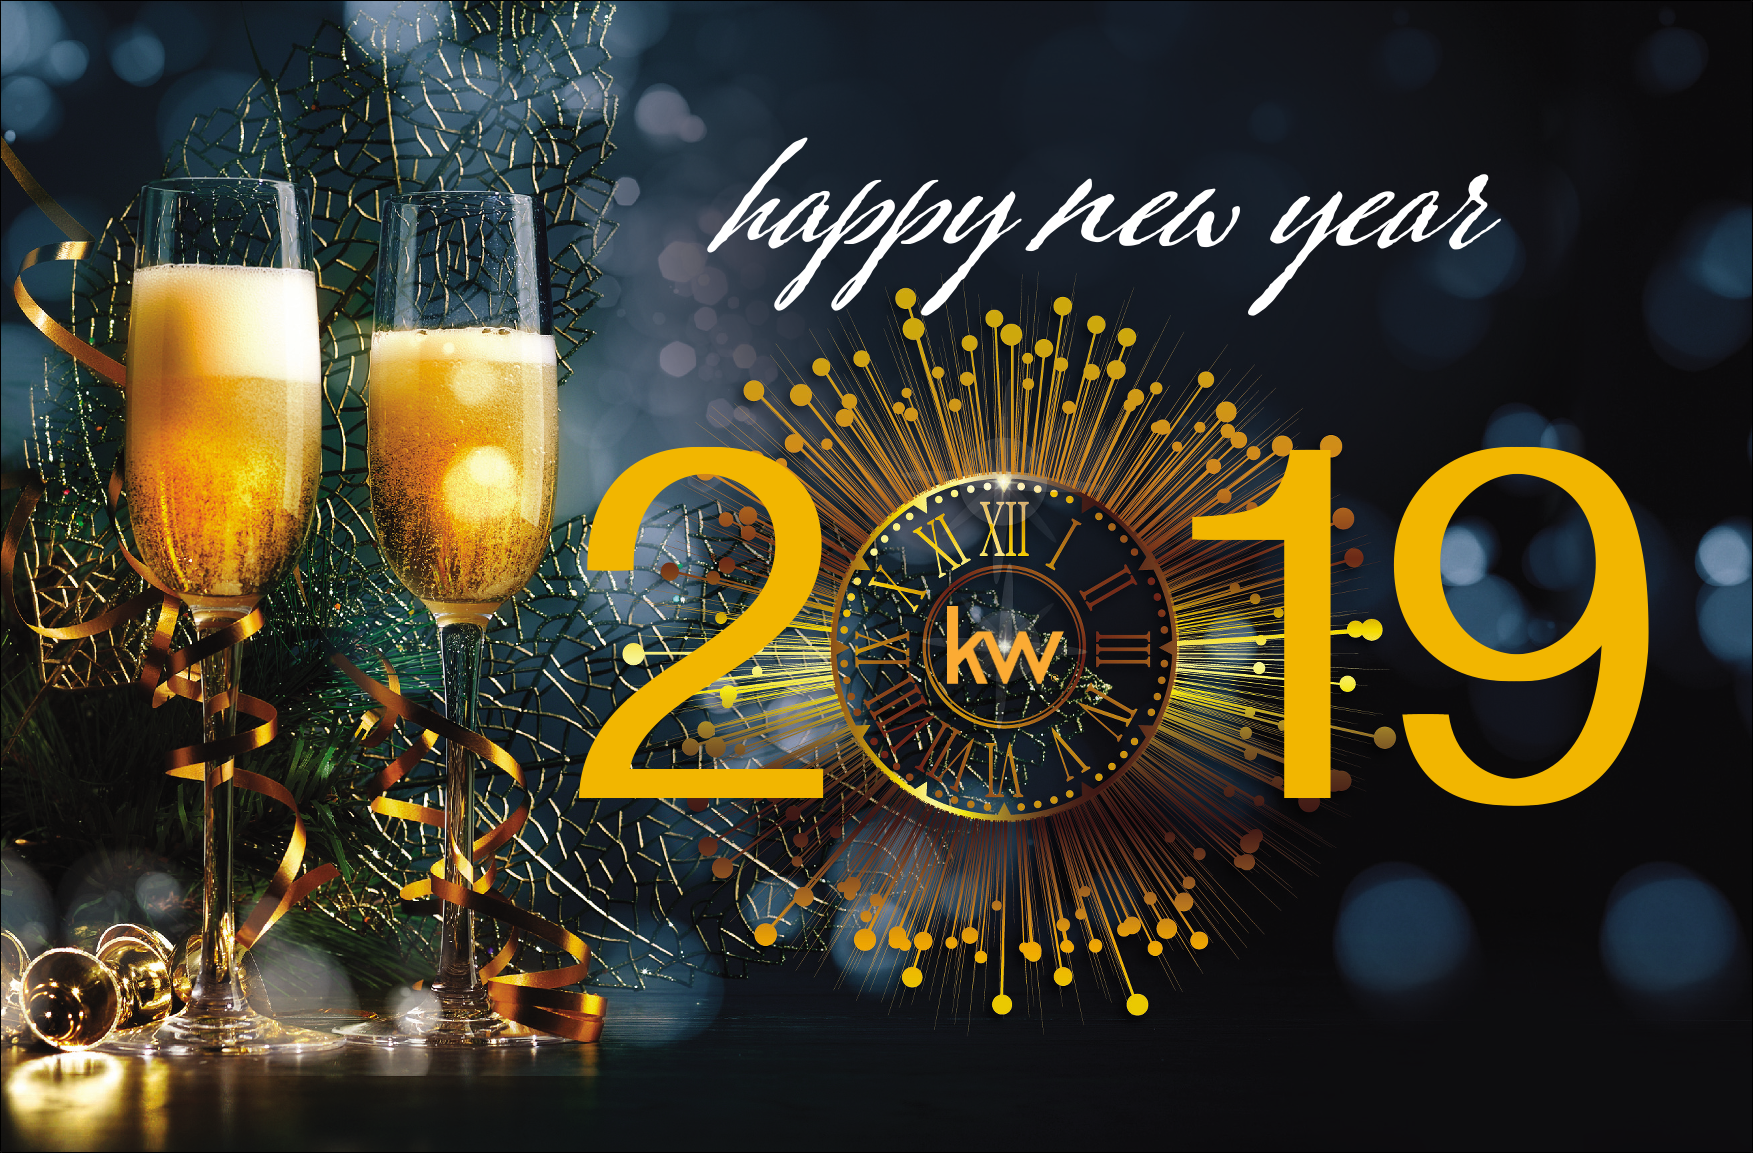 I D Like To Wish You All A Healthy And Prosperous New Year Newyears Newyearseve 2019 Holidays Ho Los Angeles Real Estate Real Estate Happy New Years Eve